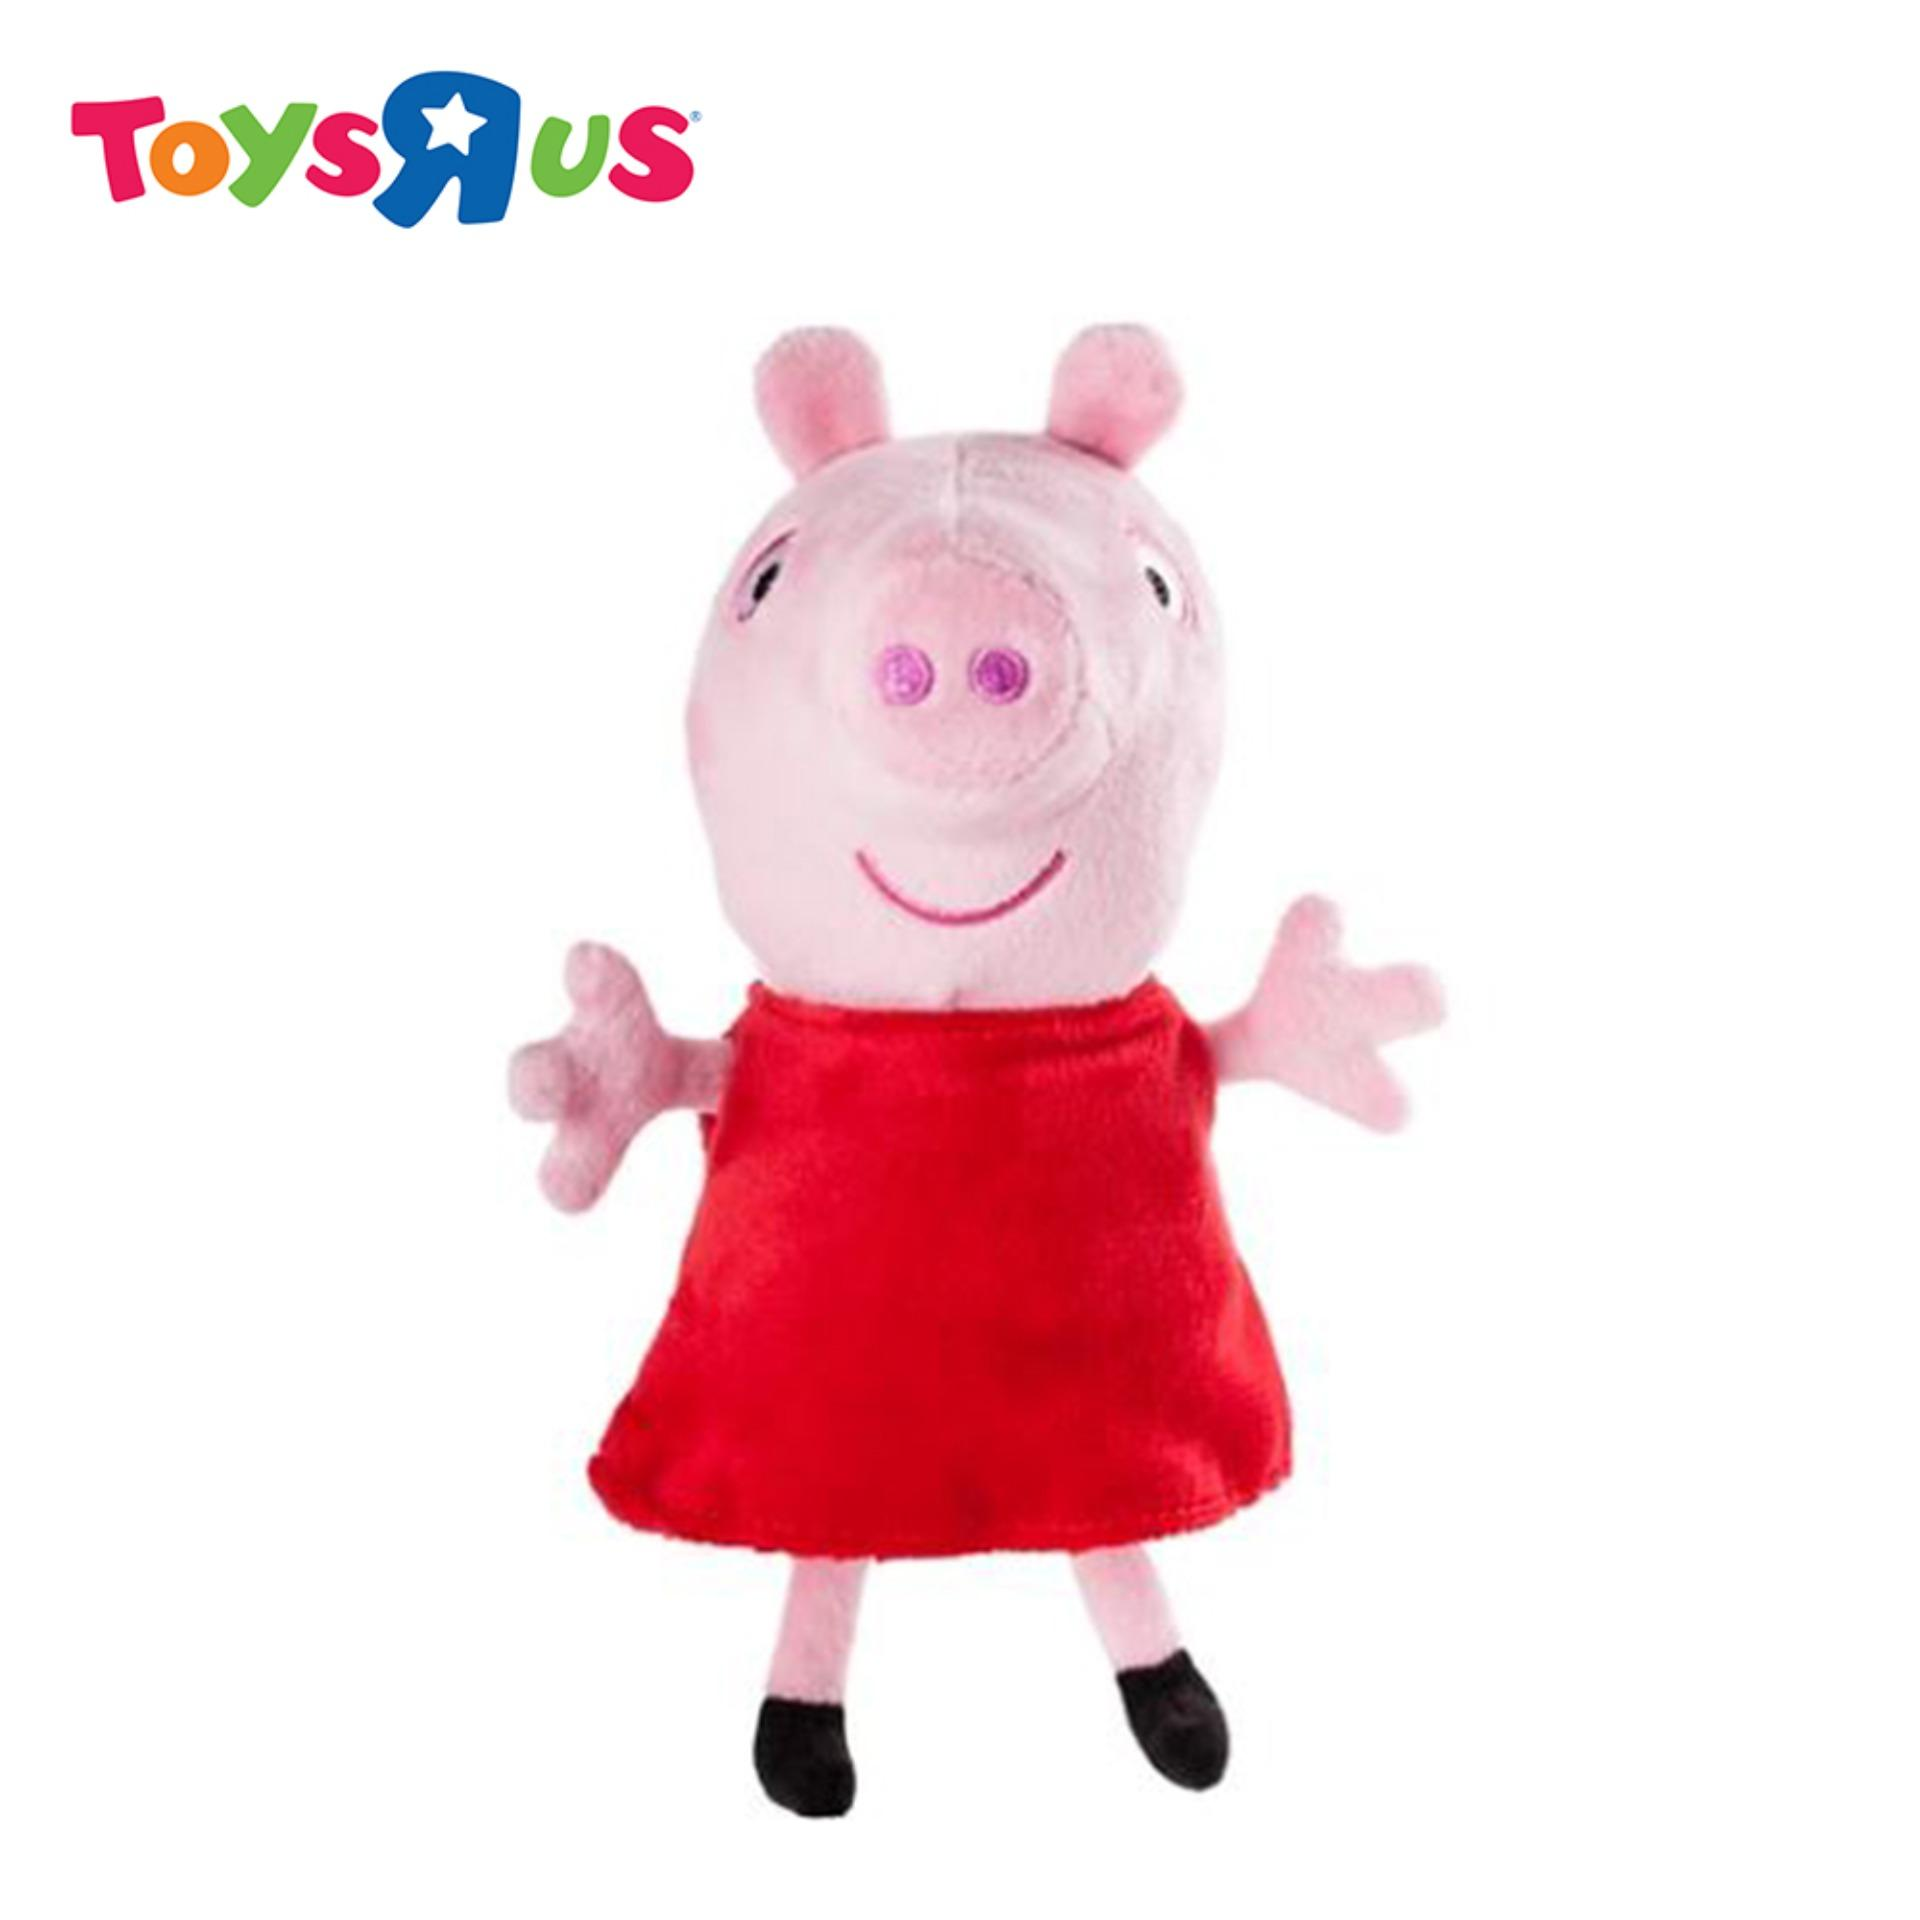 Peppa Pig 6 inch Plush with Sound (Princess Peppa)